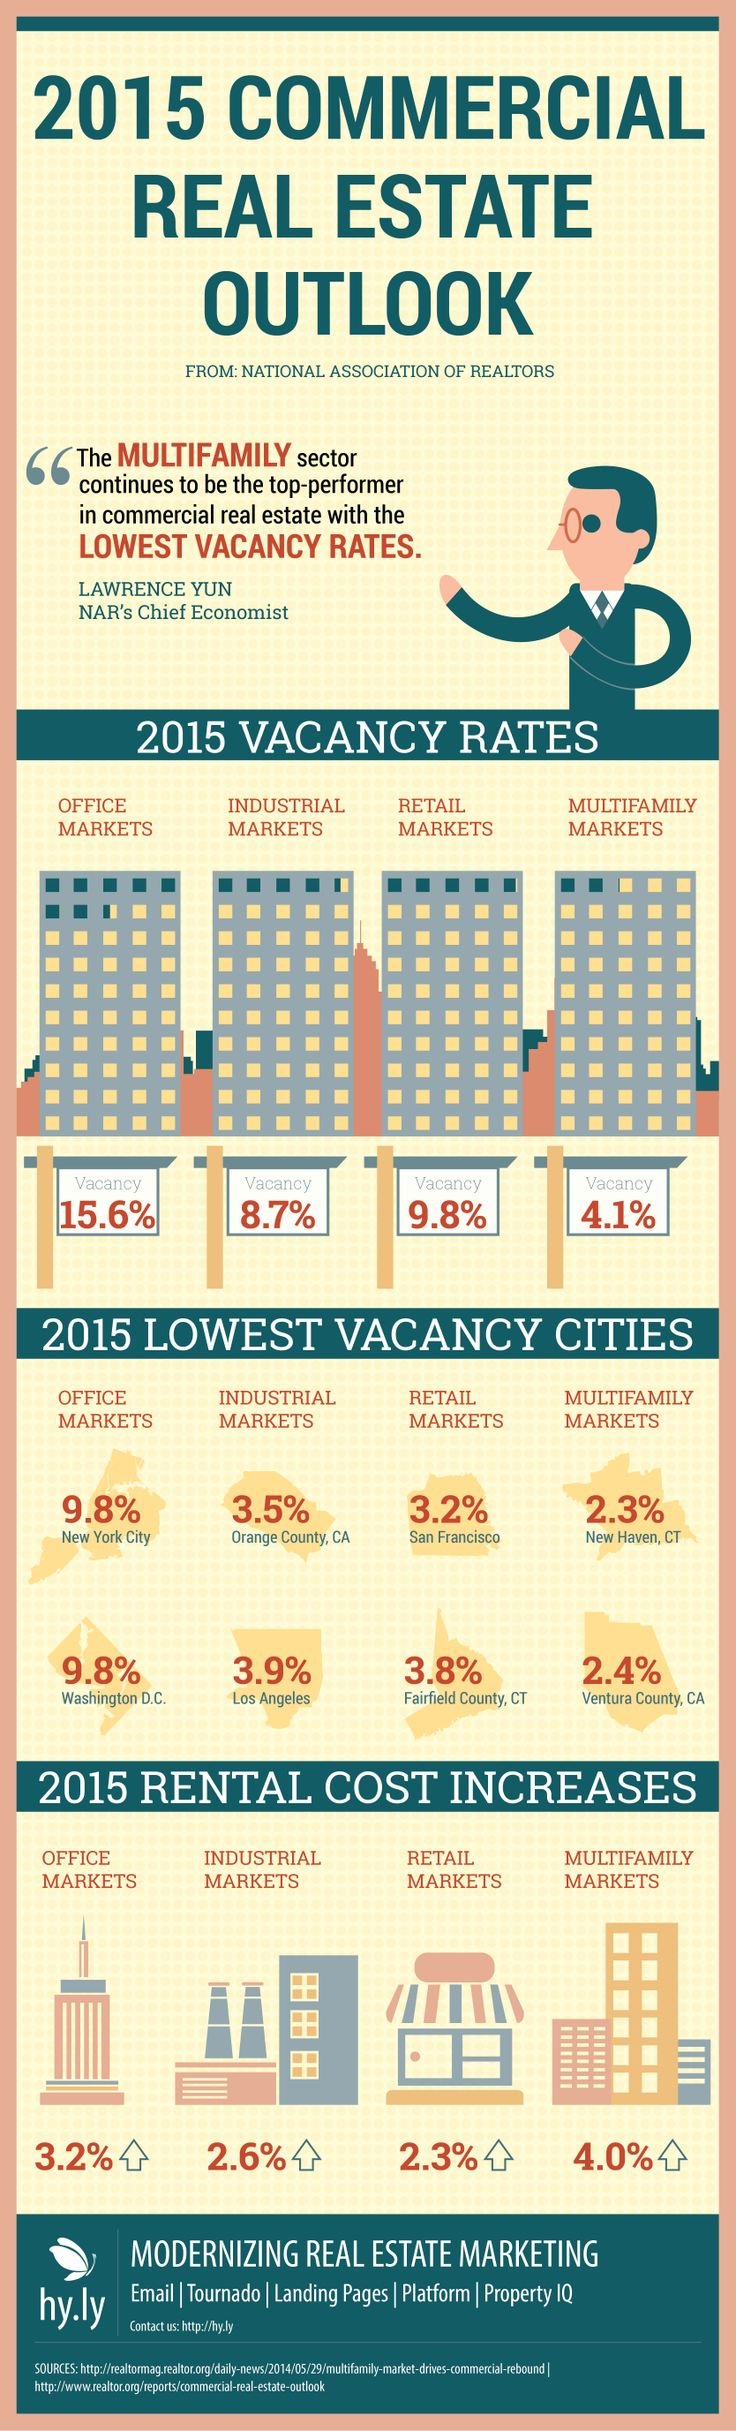 2015-commercial-real-estate-outlook